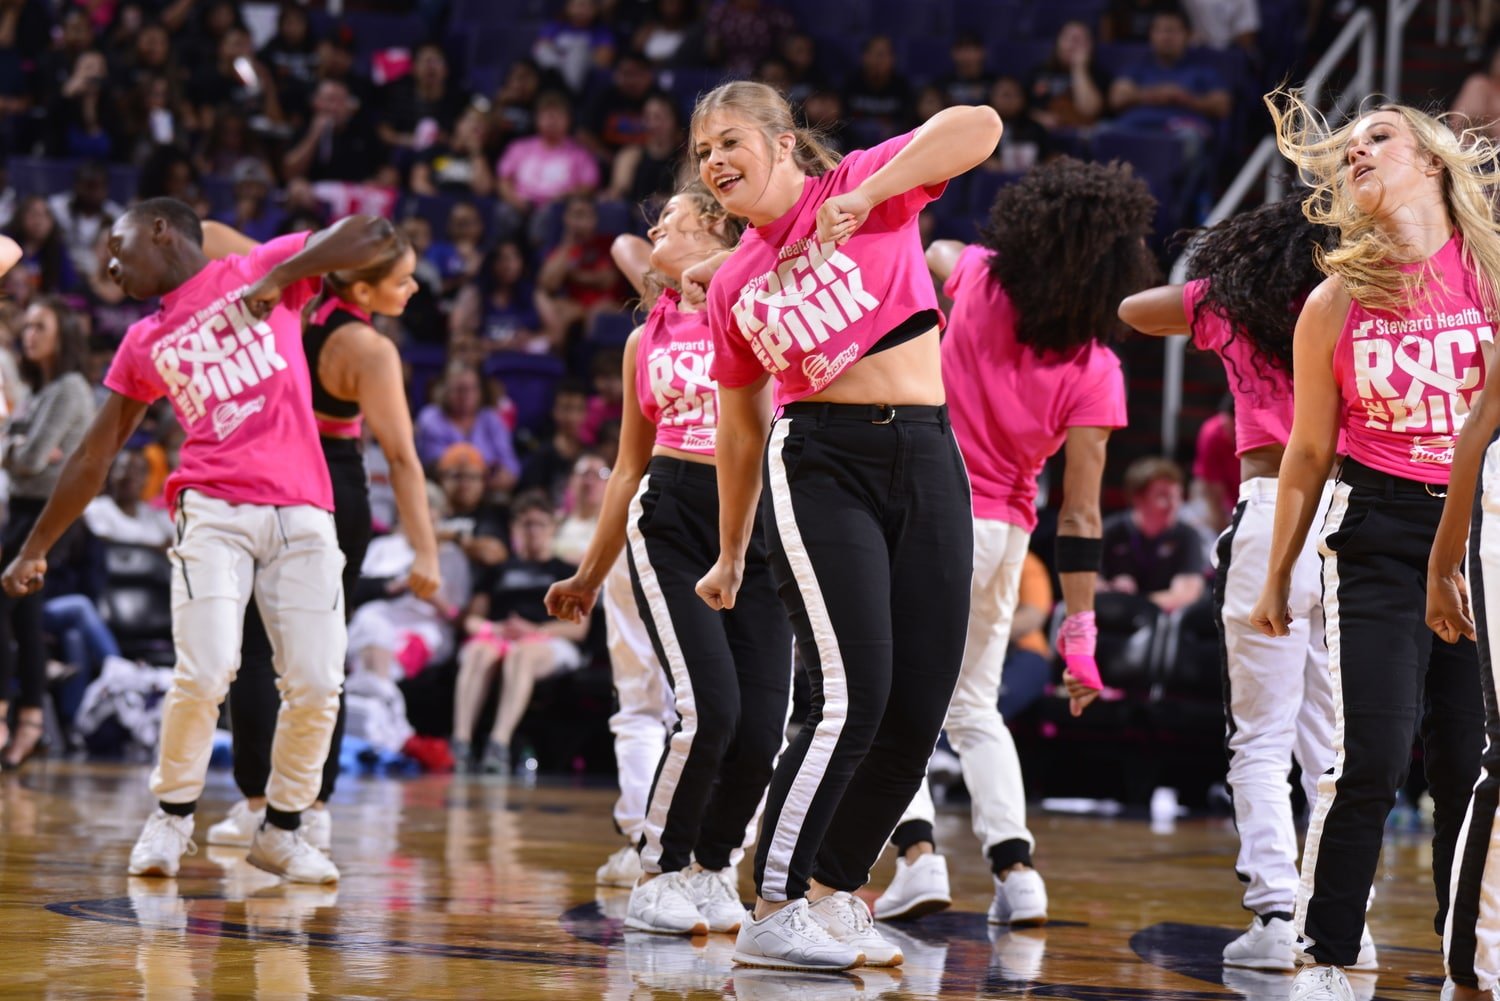 Rock the Pink night